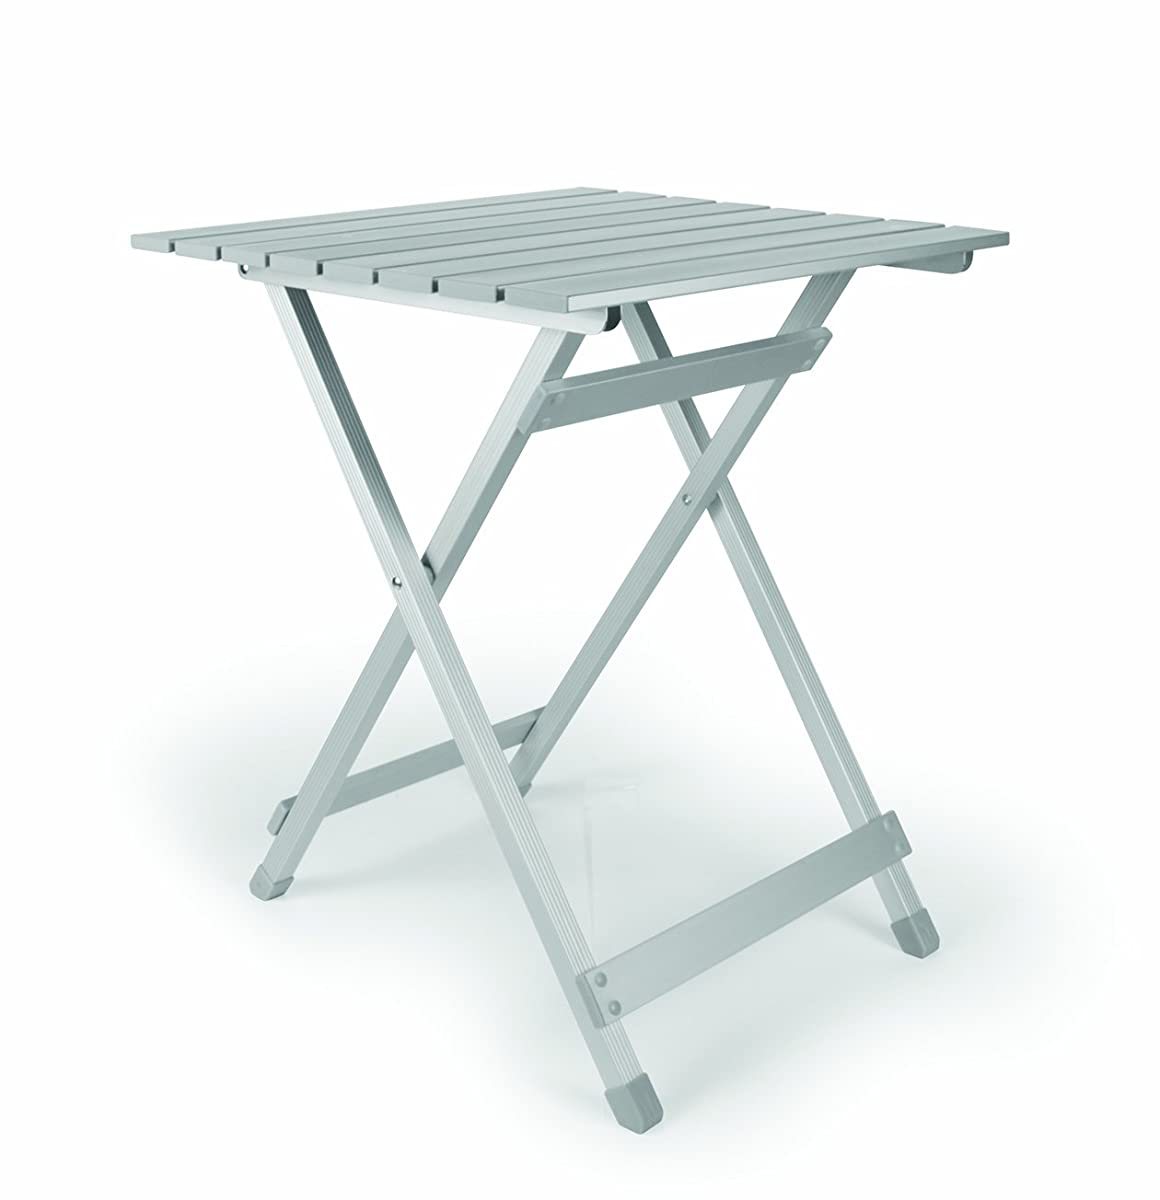 Camco 51891 Aluminum Fold-Away Side Table - Large